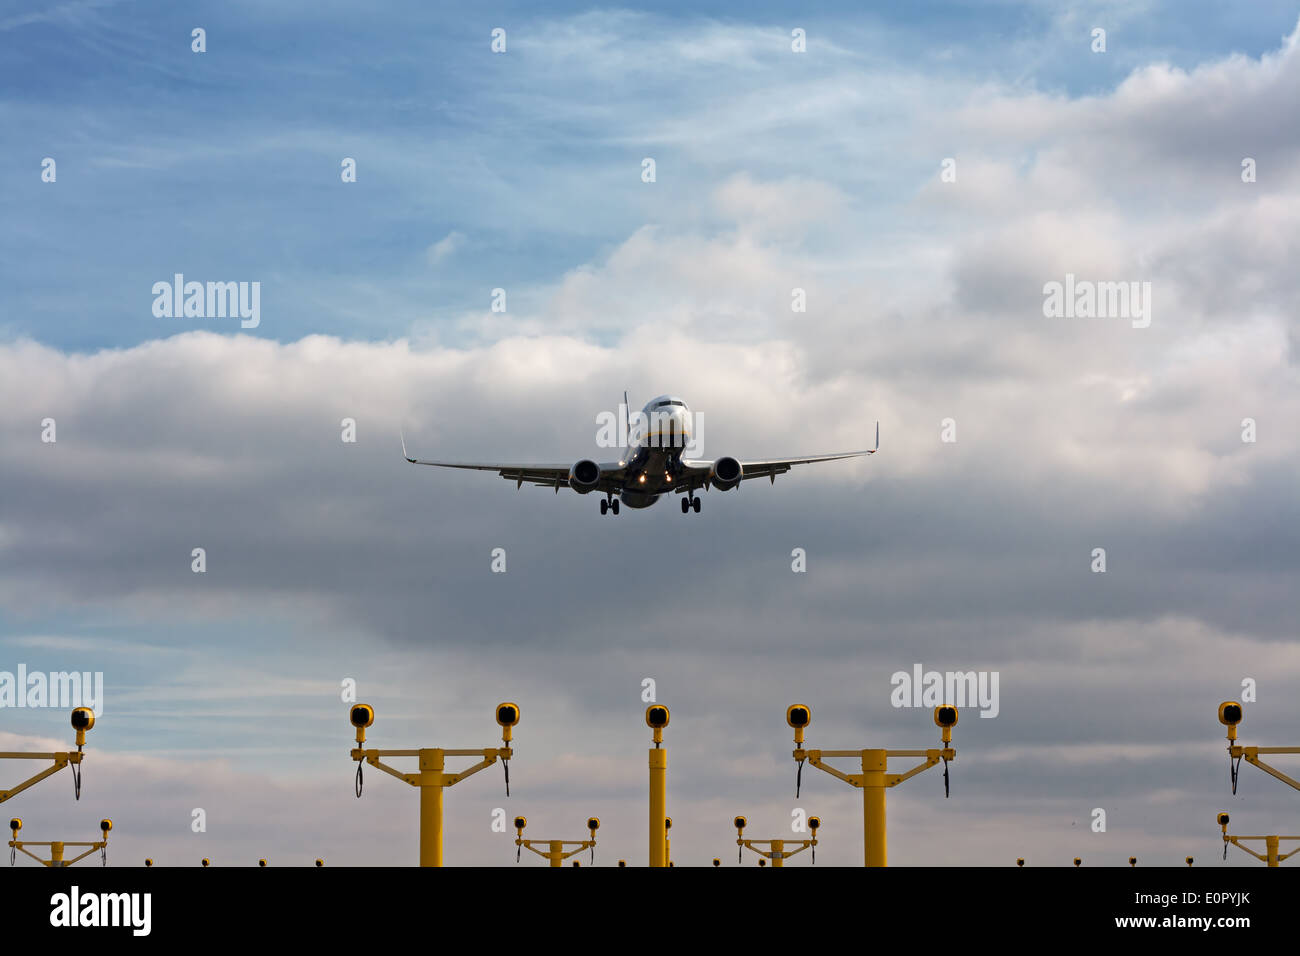 Passenger plane on final approach, with landing lights in view - Stock Image